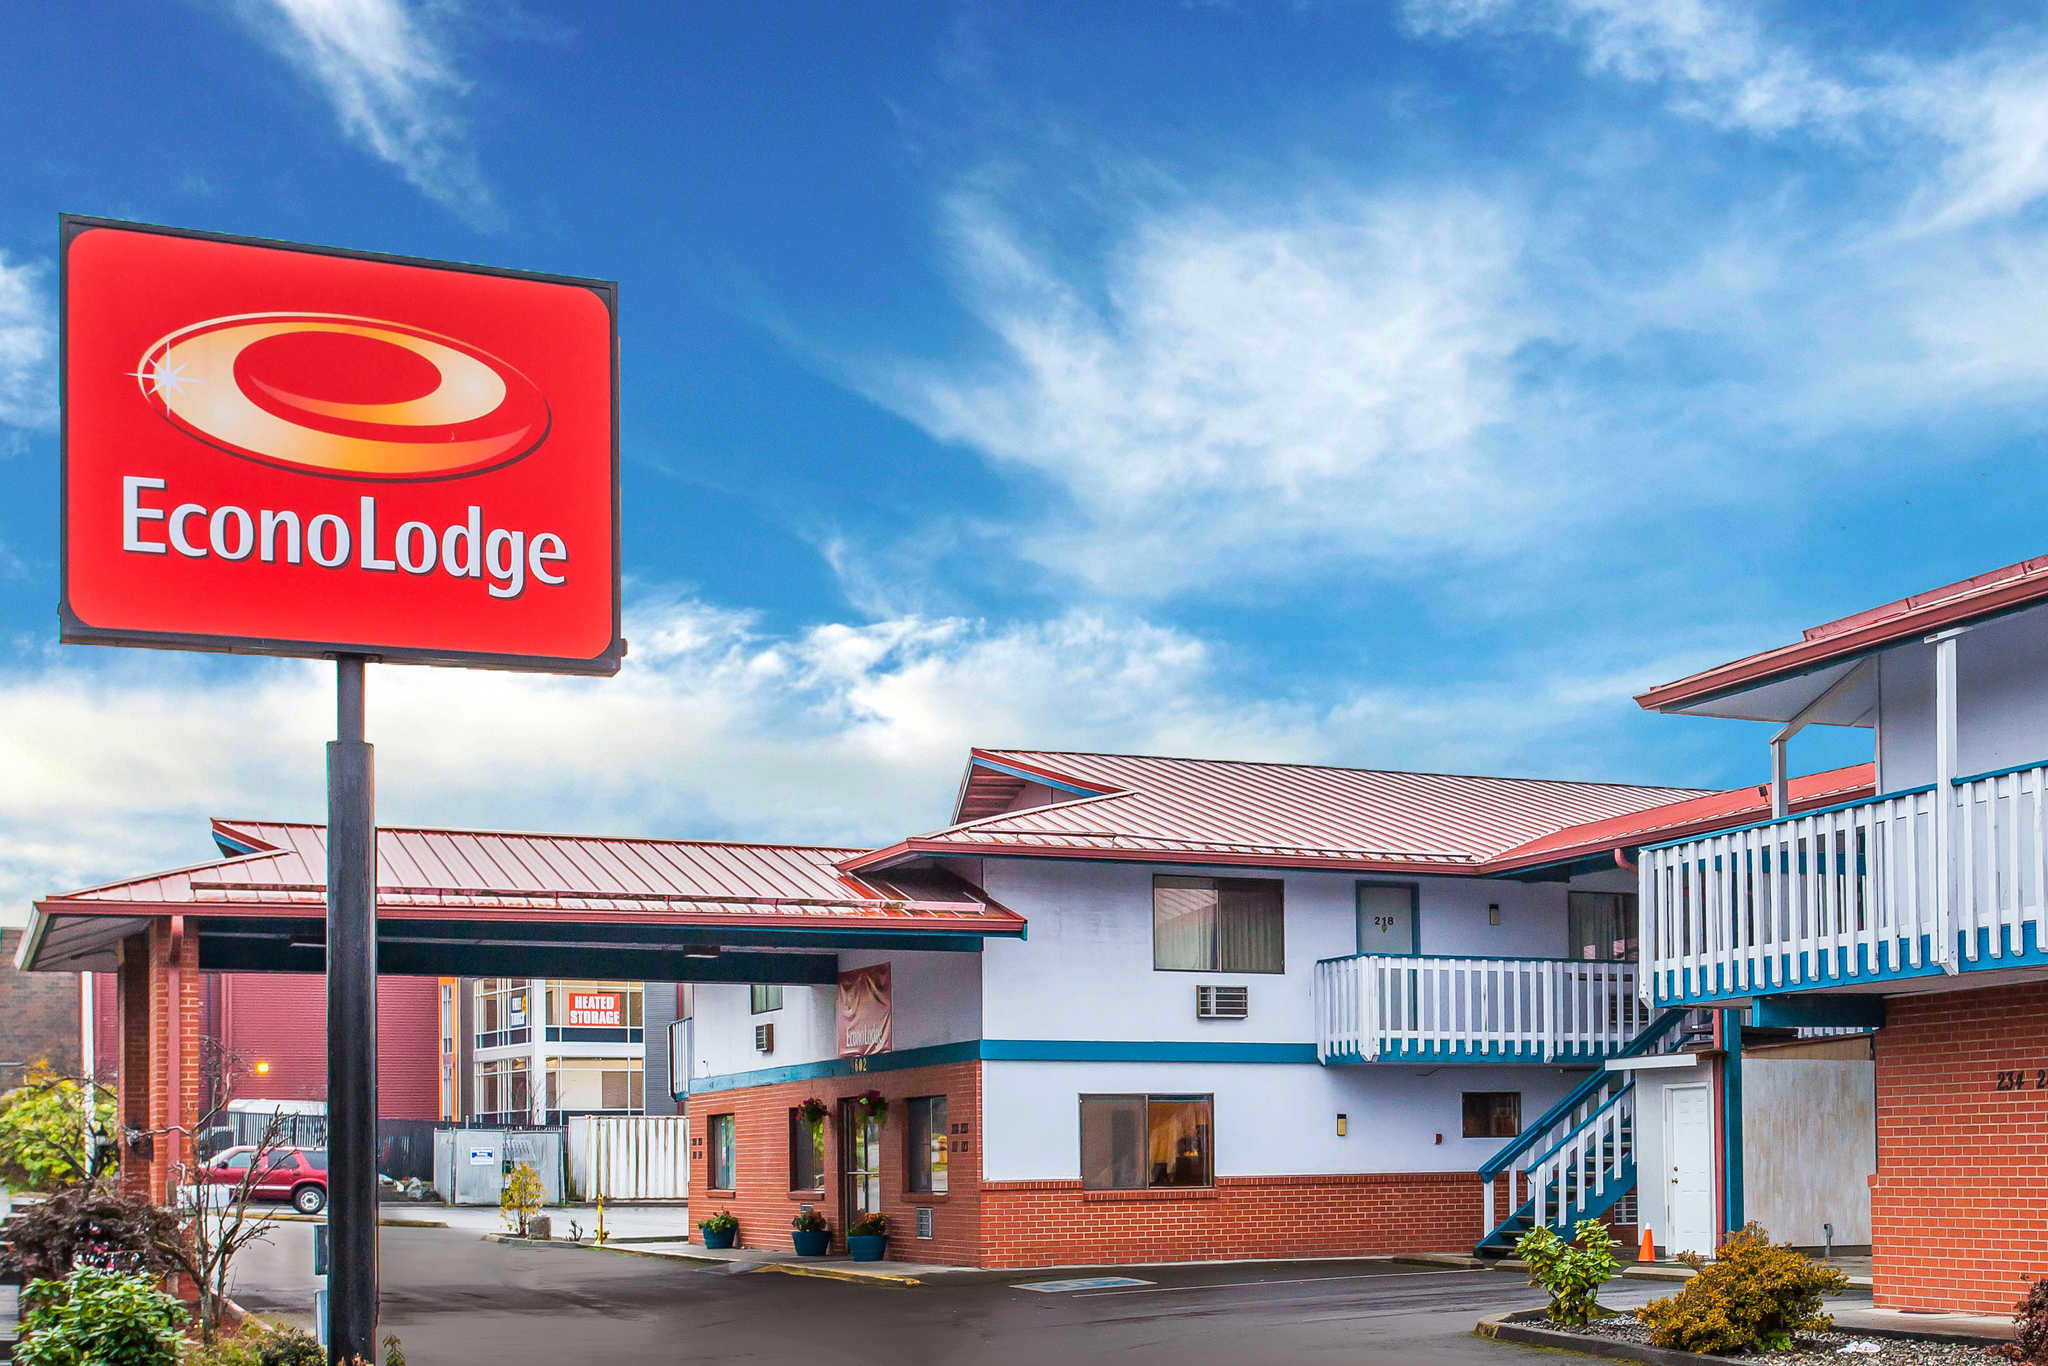 Econo Lodge image 0